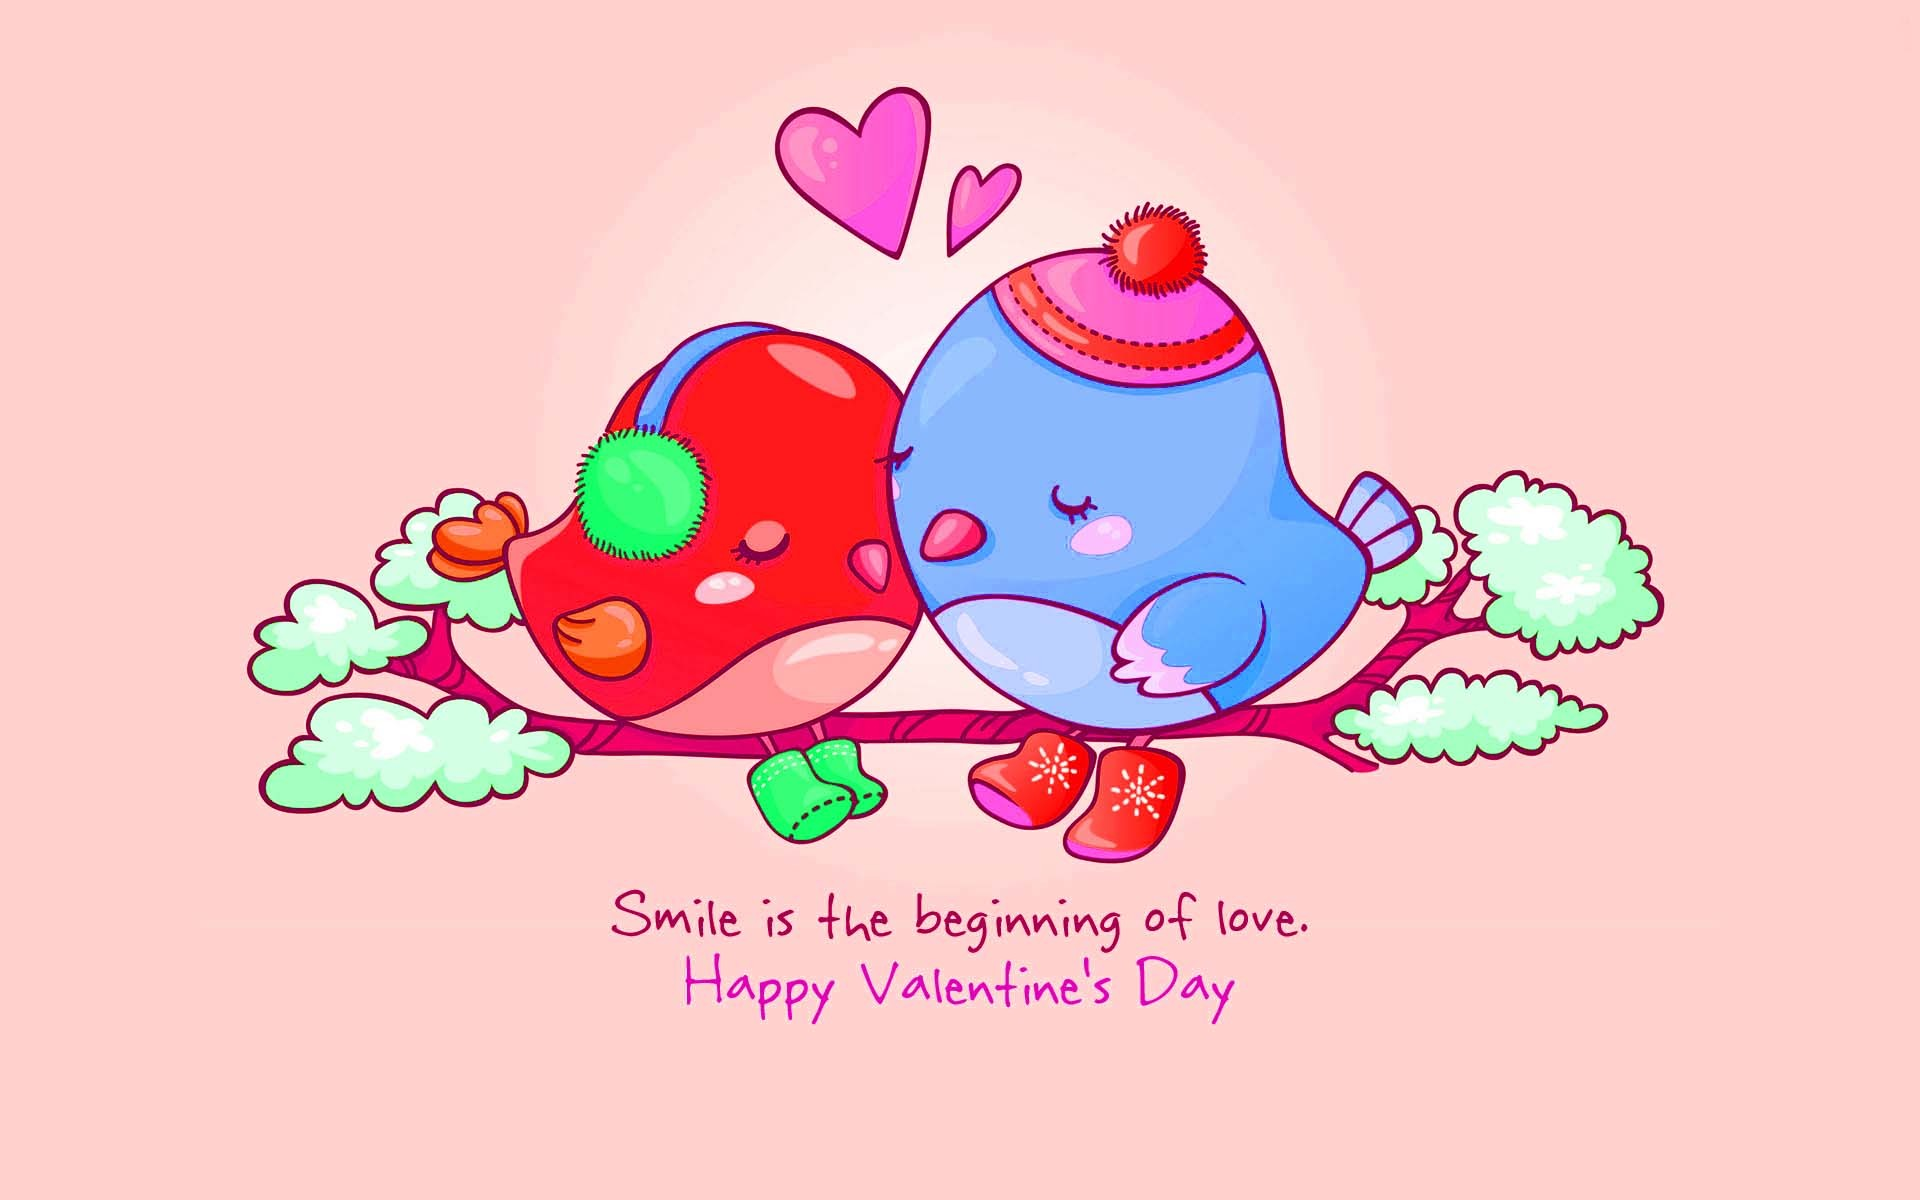 Cute Valentines Day Wallpapers